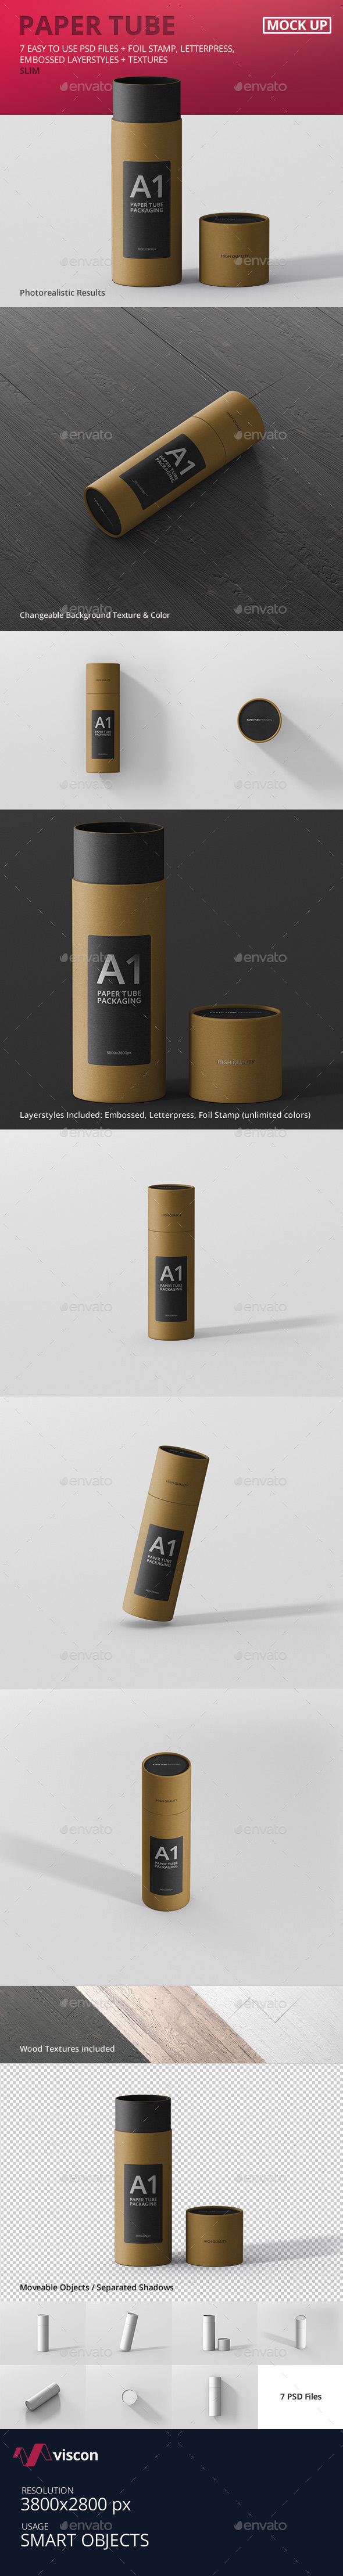 Paper Tube Packaging Mockup - Slim